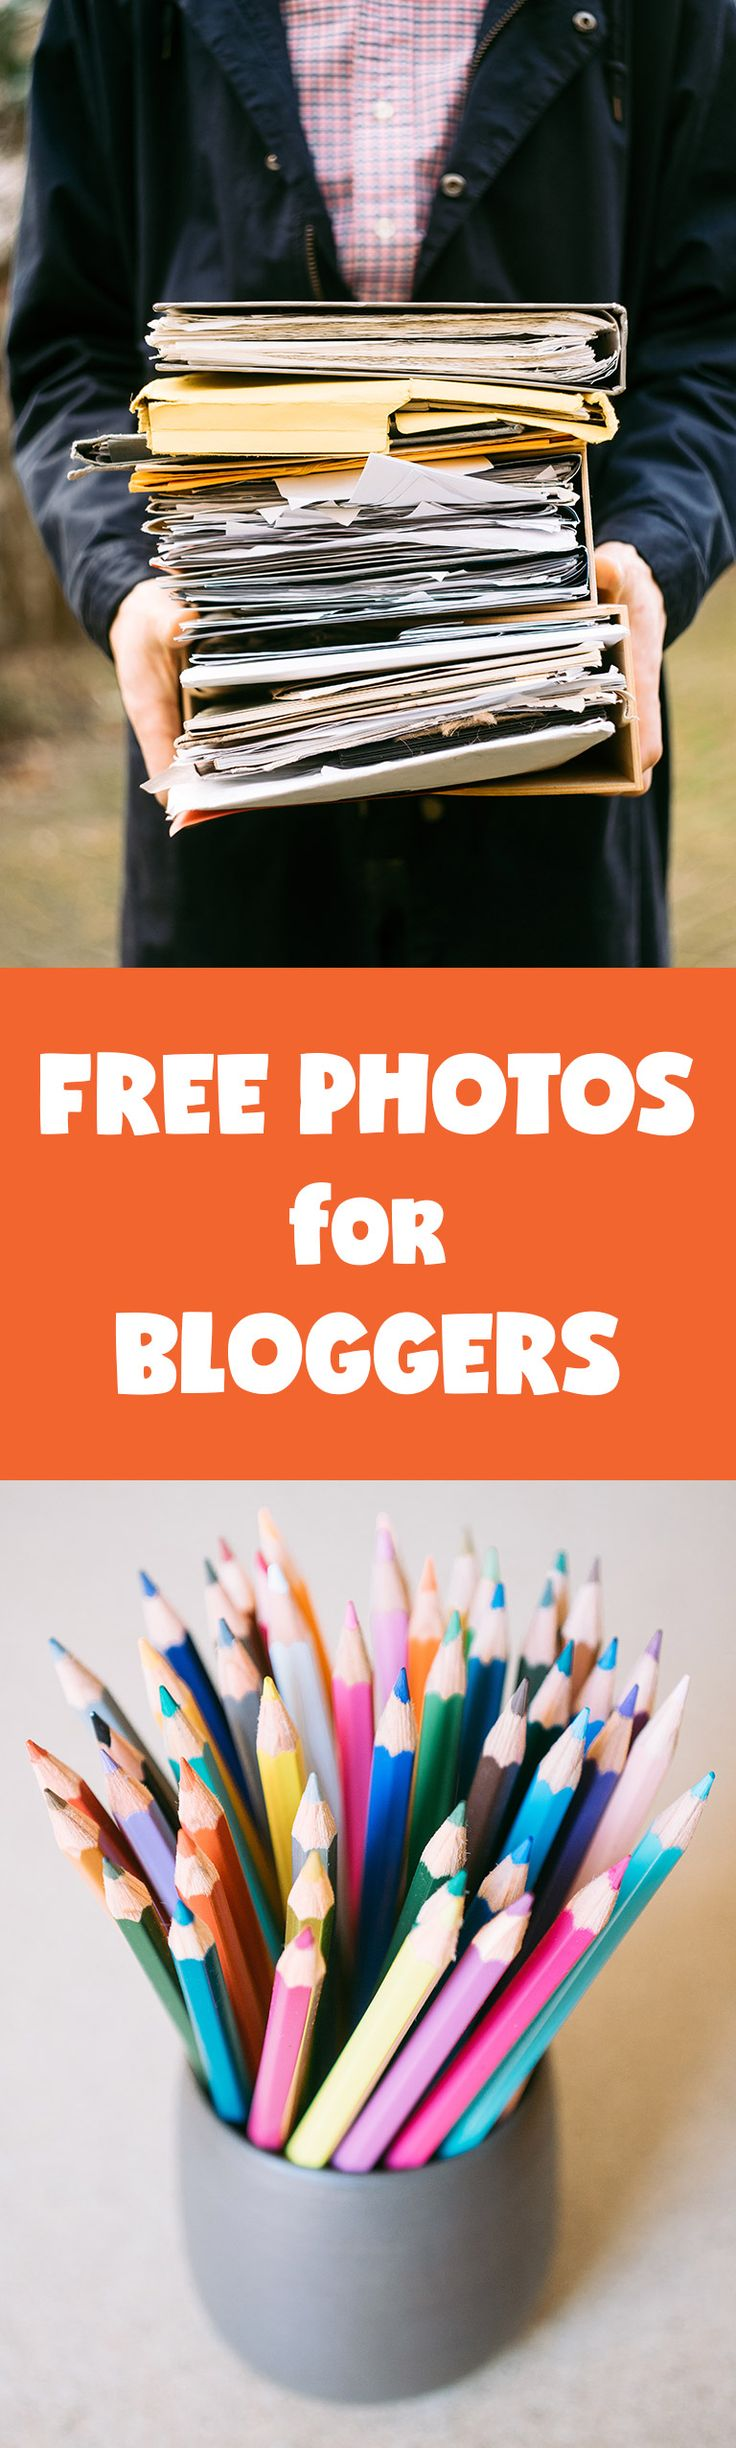 Thousands of free stock photos and free non-stock photos! An amazing free images resource for blog, design and small business. Updated every day! Nothing but gorgeous photographs – one of the best blogging resources around.